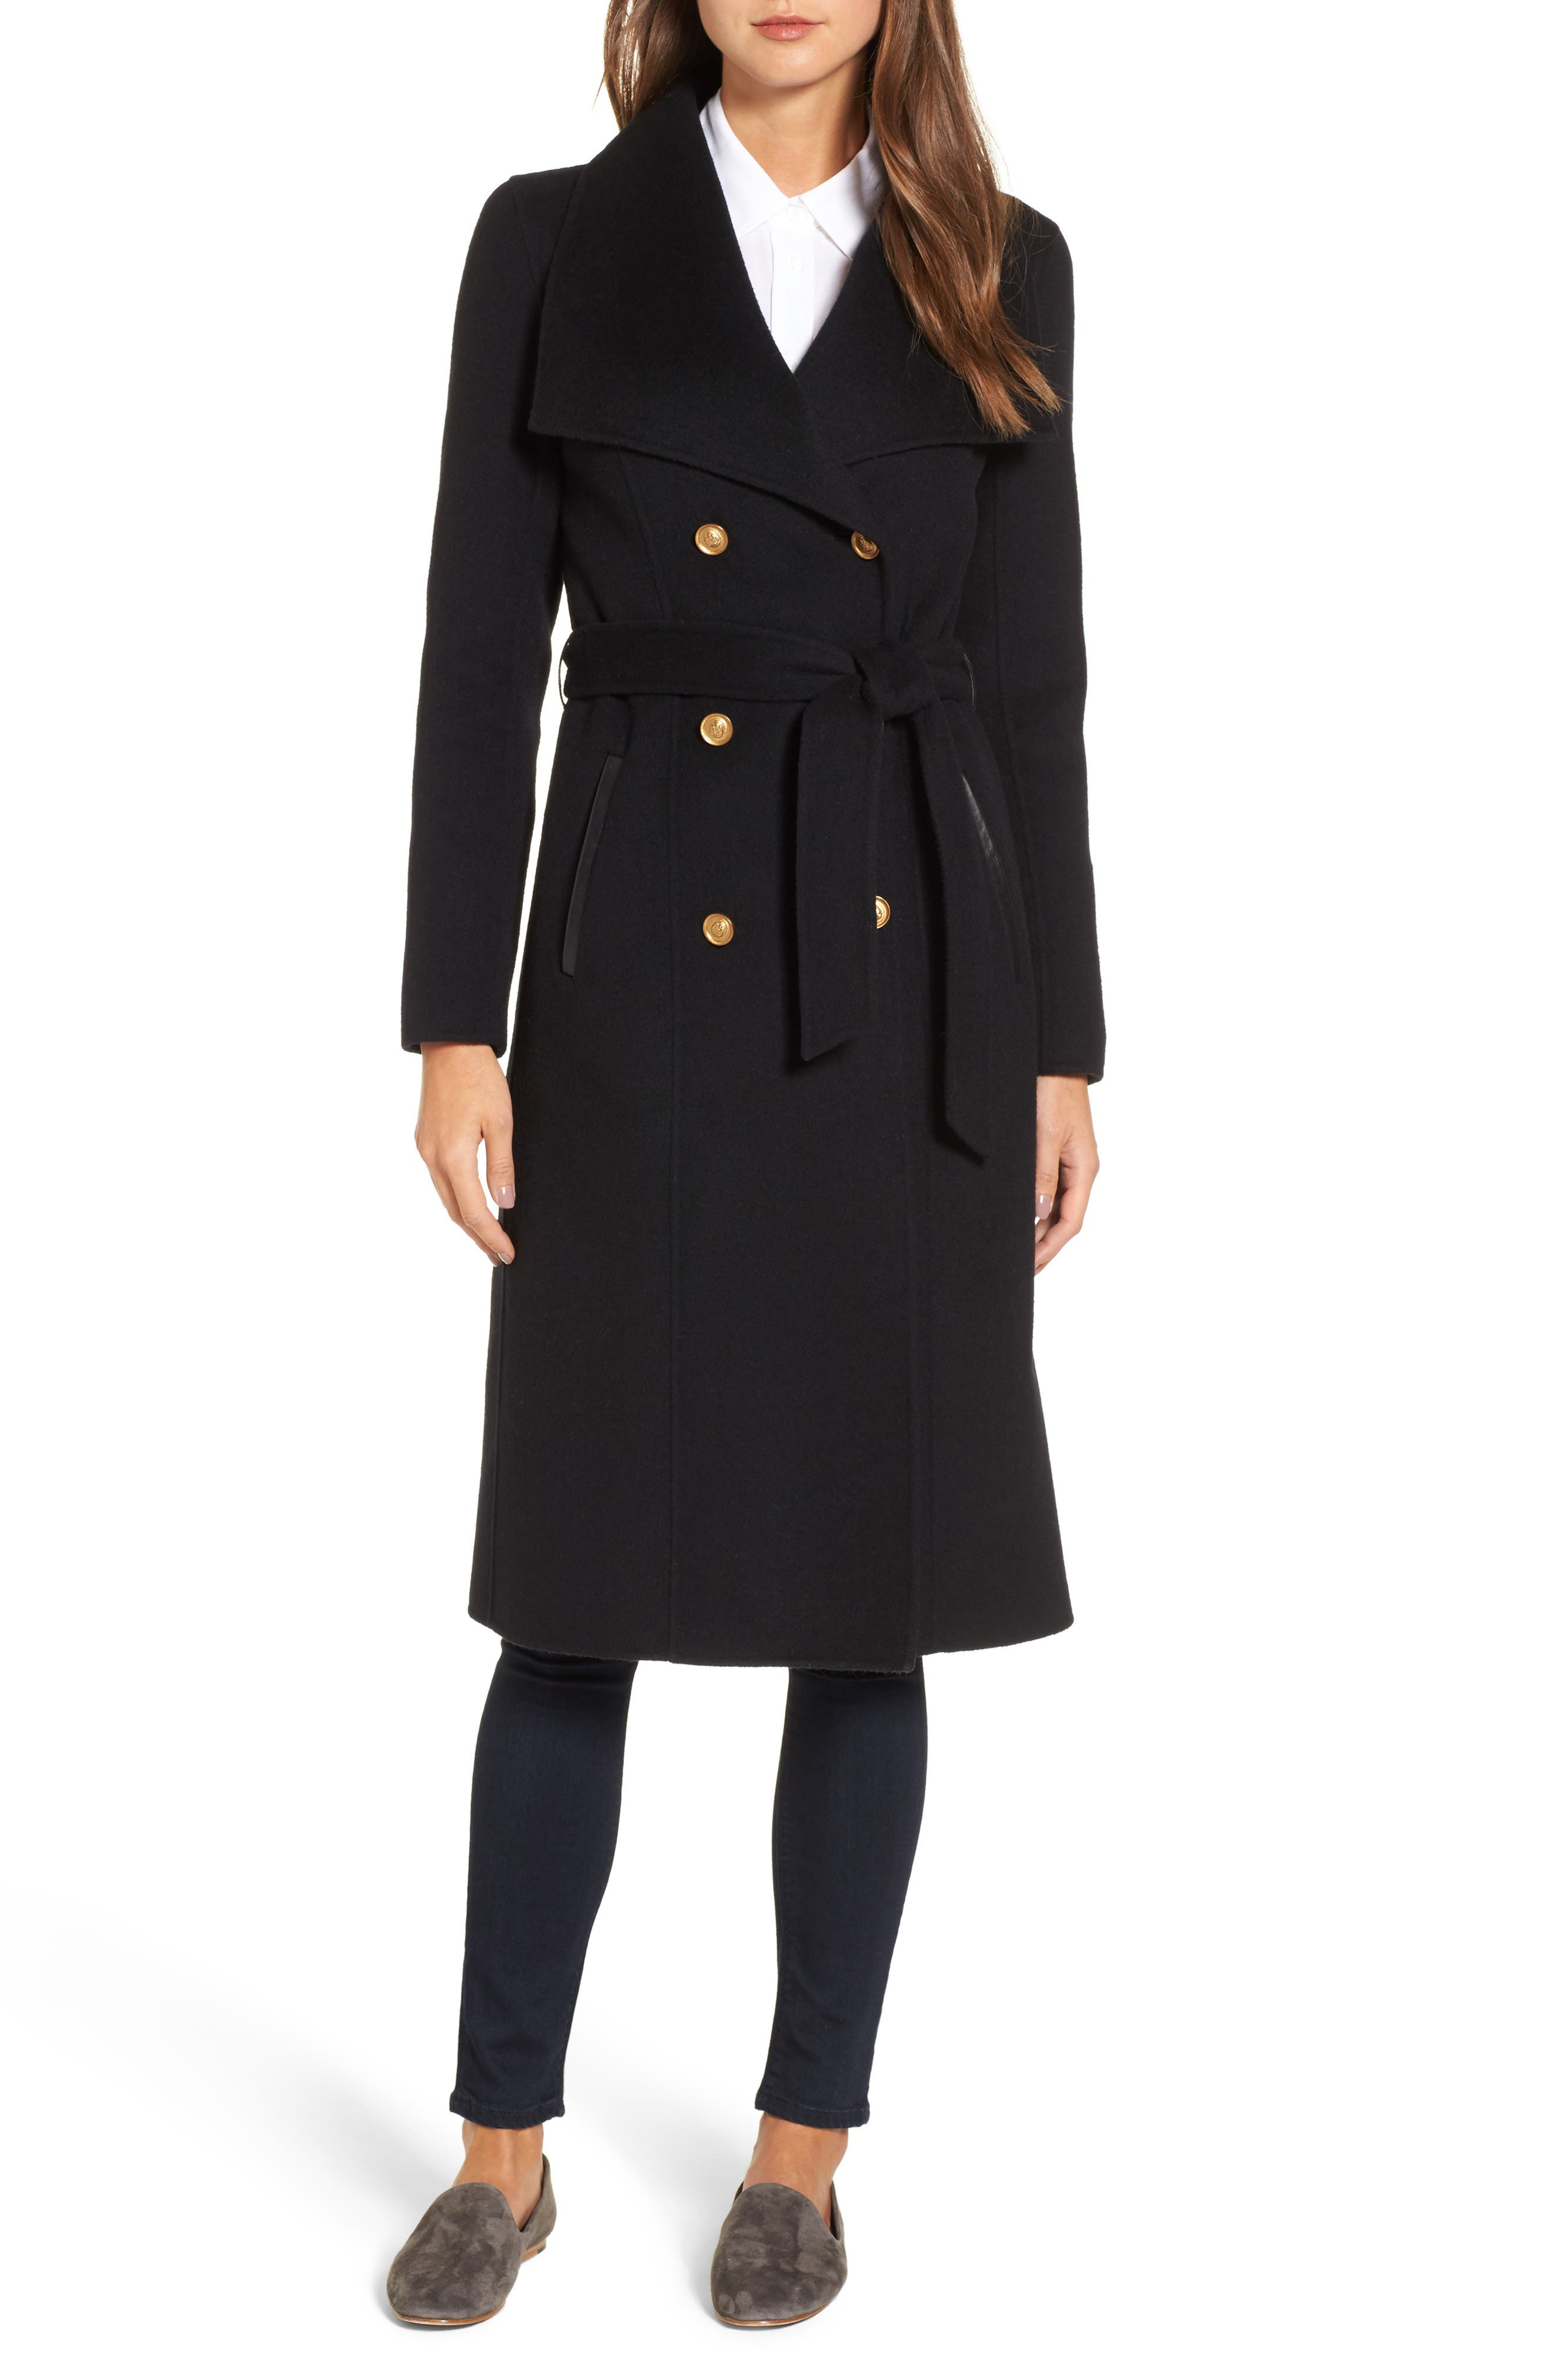 Norah-N Double Breasted Wool Blend Long Military Coat,                         Main,                         color, 001